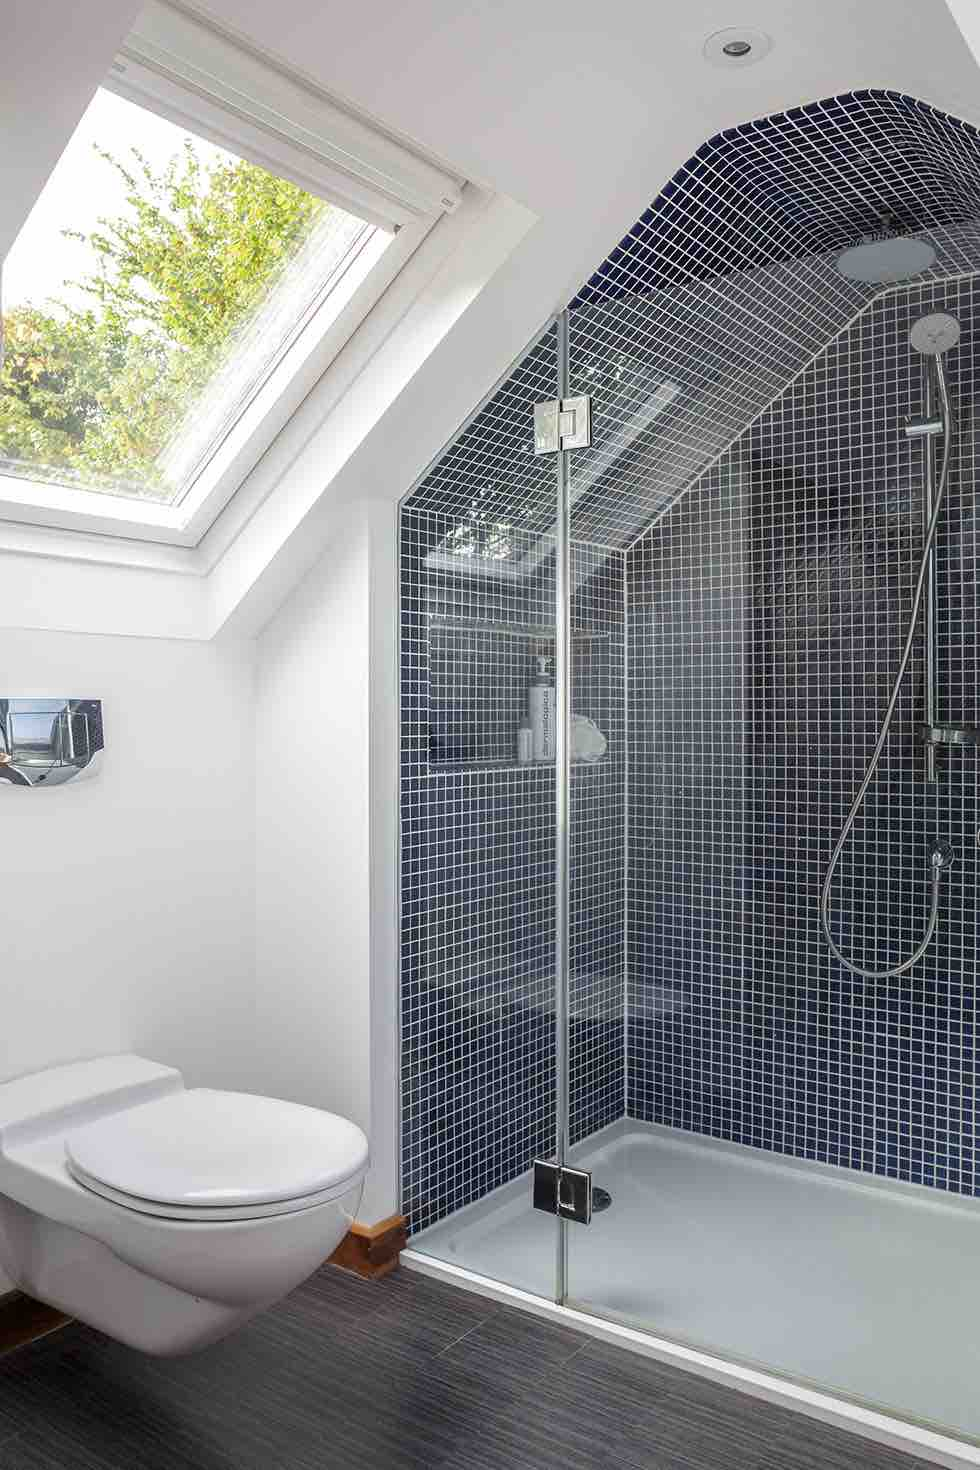 15 bathroom design ideas homebuilding renovating for Bathroom design 5m2